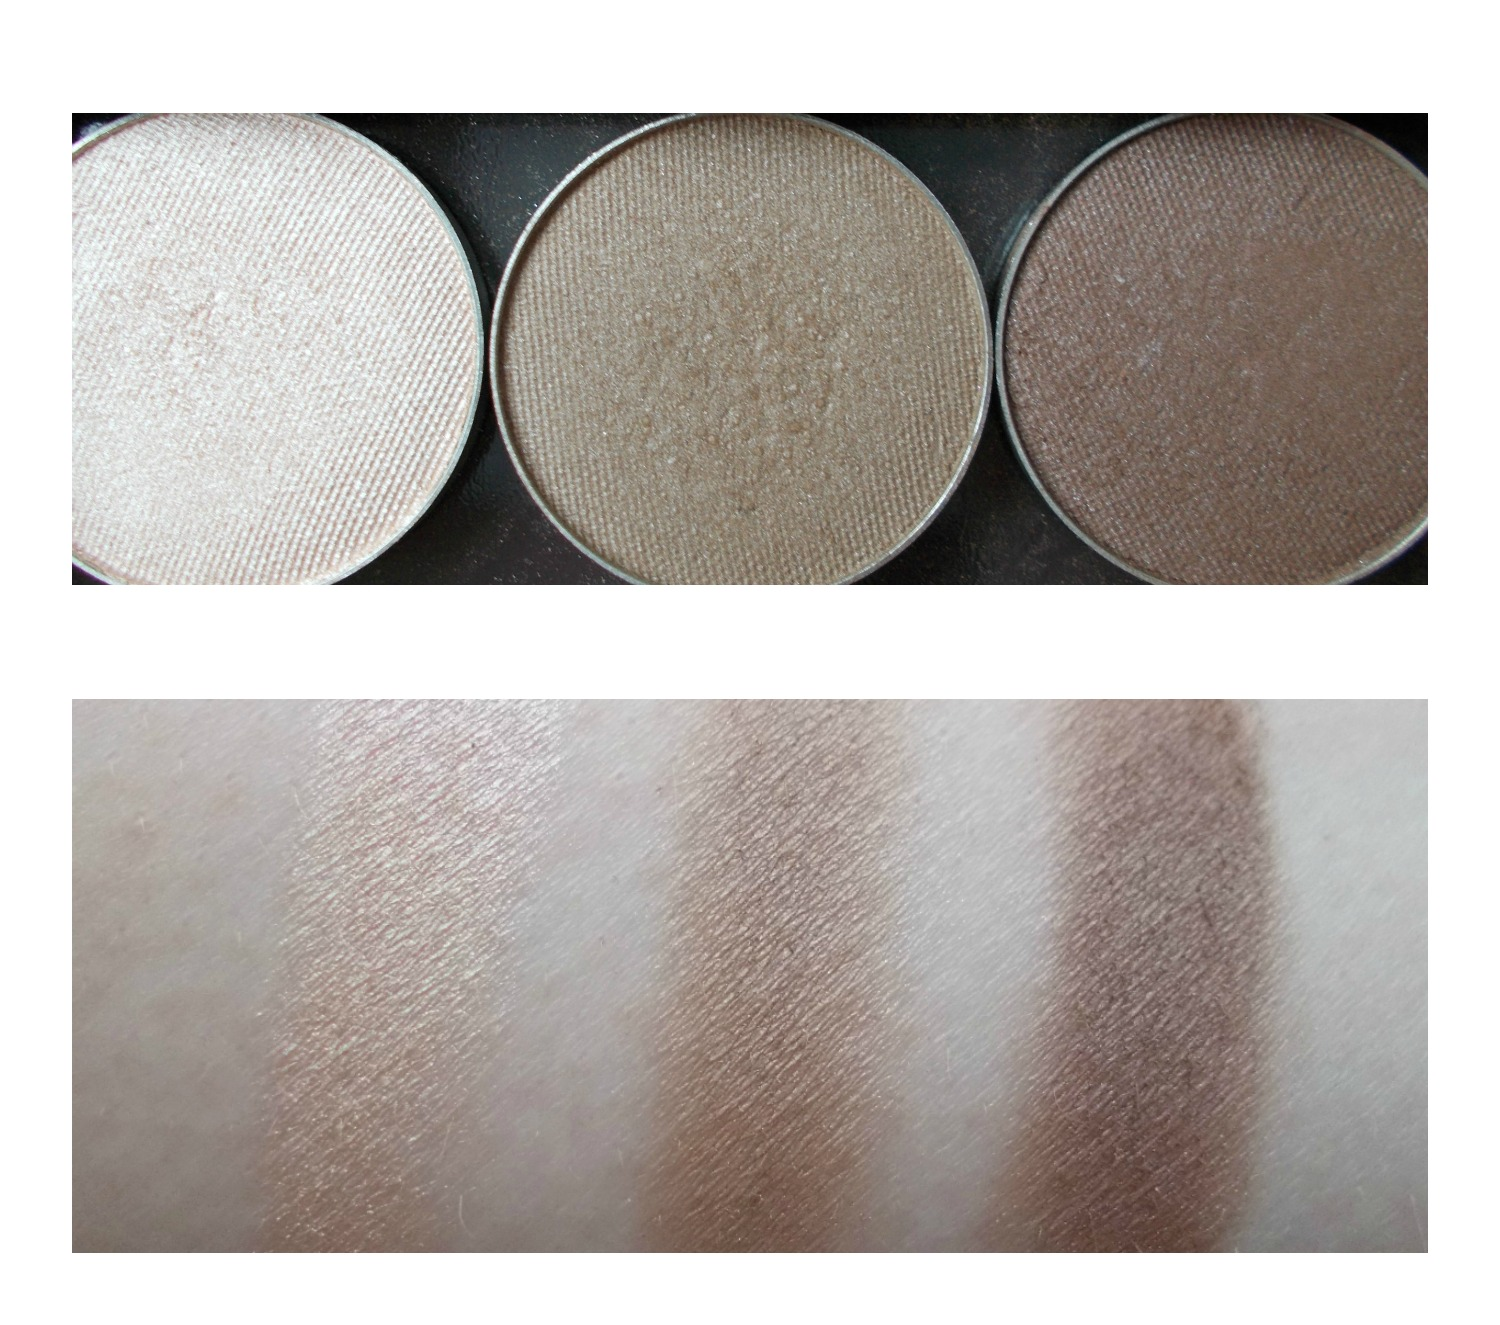 makeup geek homecoming pretentious barcelona beach swatches